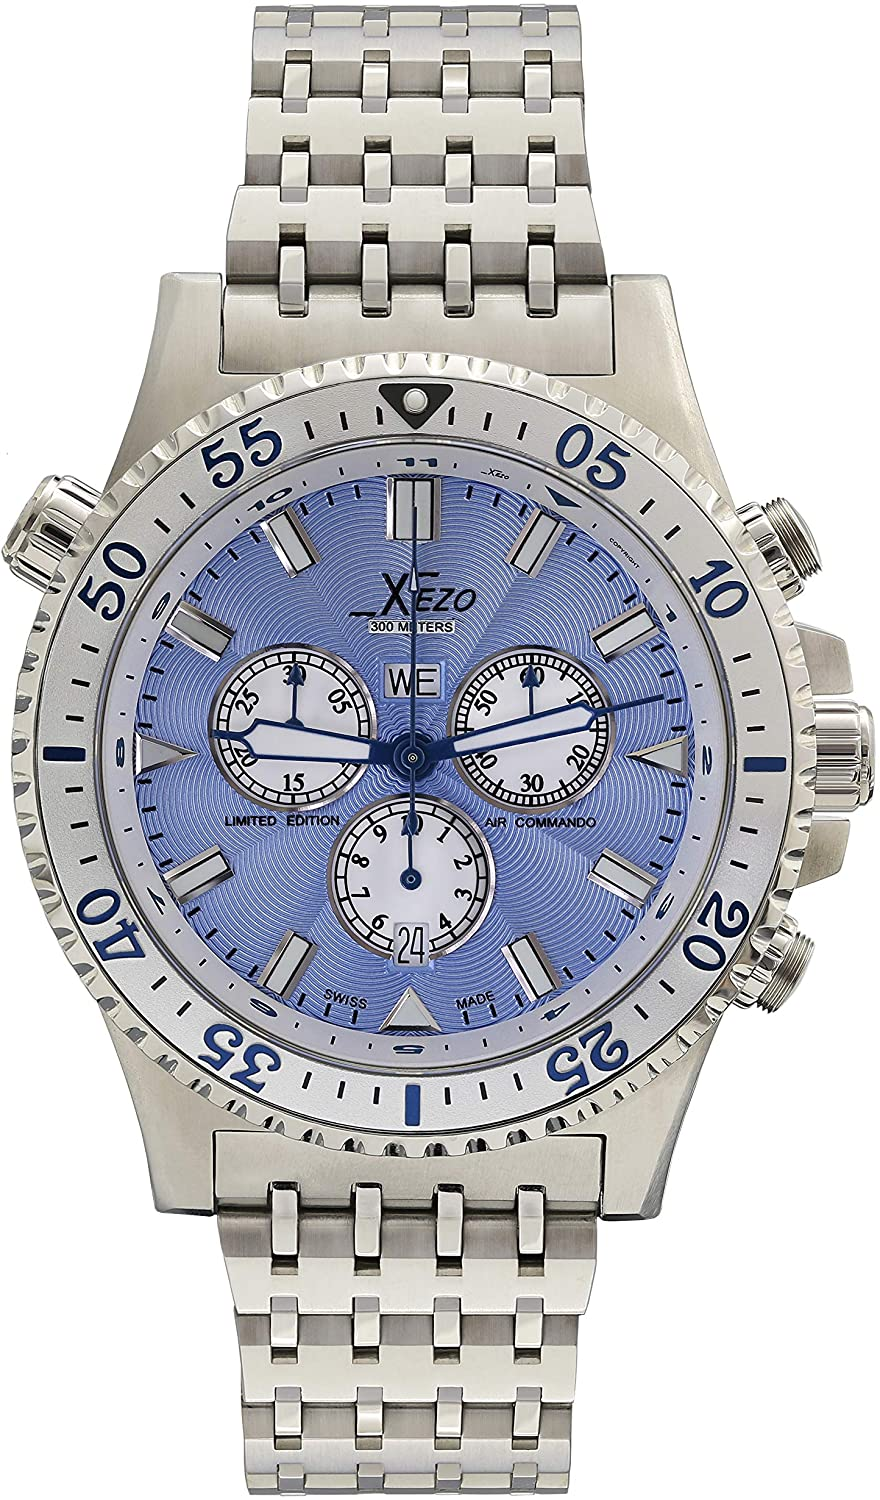 Xezo Air Commando Mens Swiss Made Serialized Luxury Pilots and Diver Chronograph Watch, 30 ATM, 2nd Time Zone